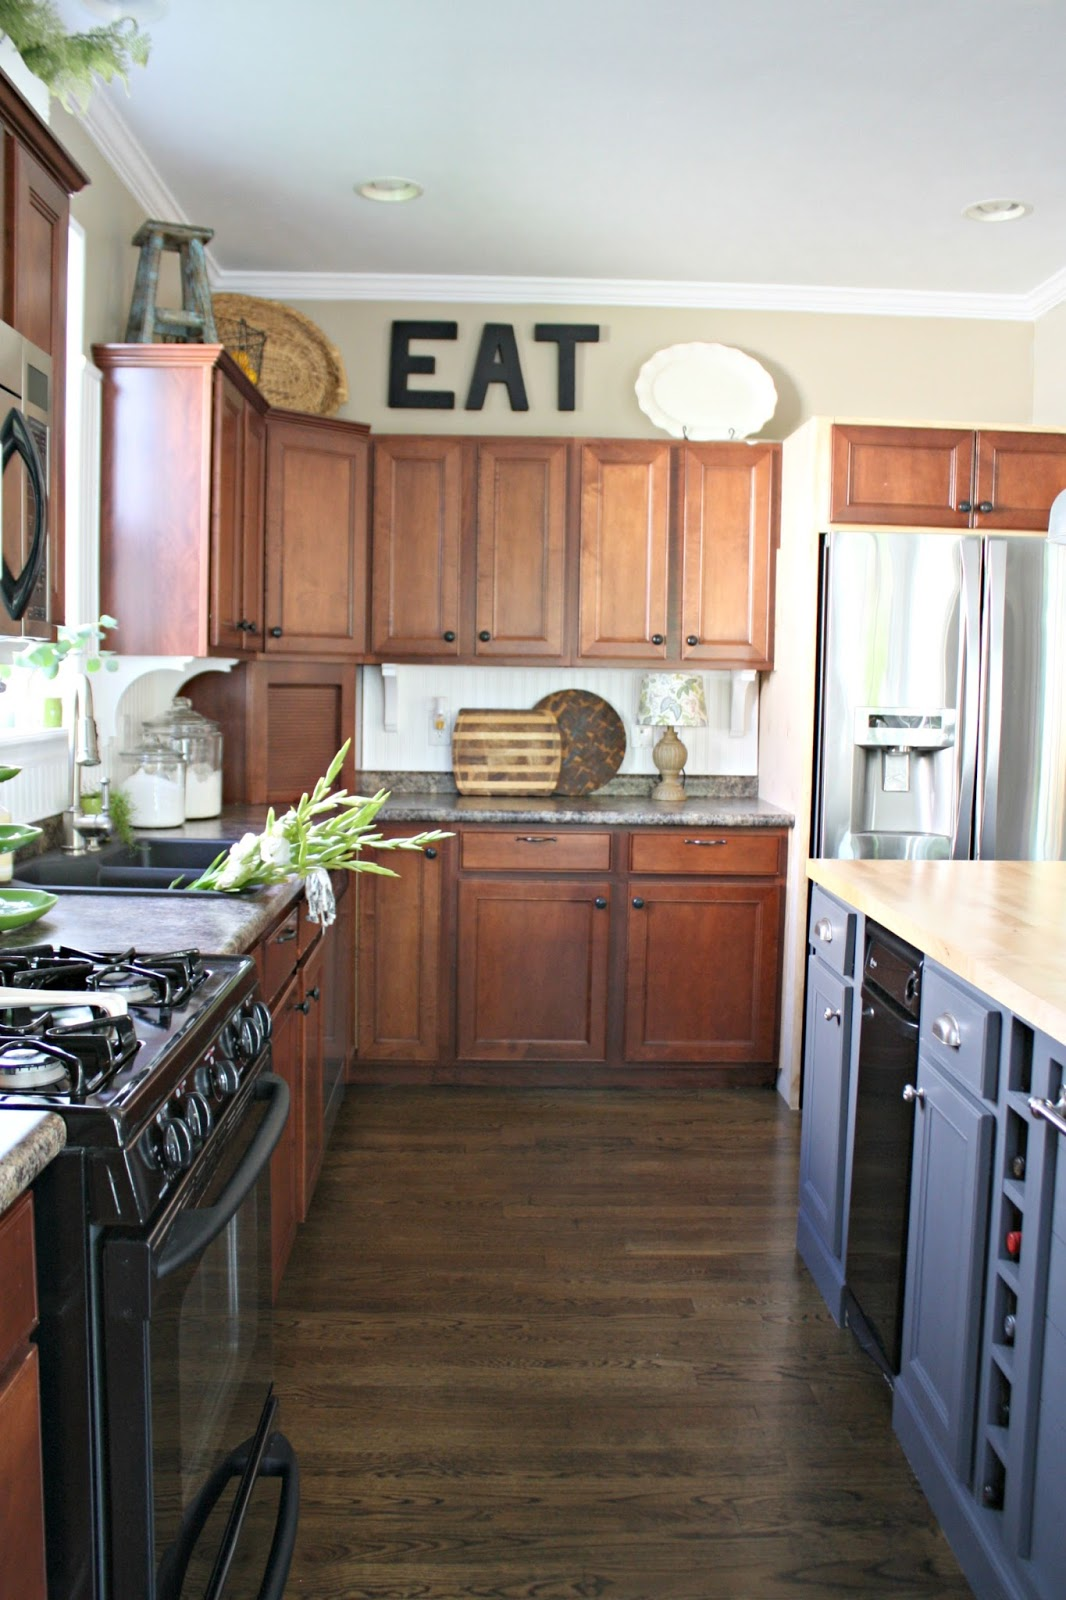 Kitchen reno the next step thrifty decor chick for Kitchen cabinets reno